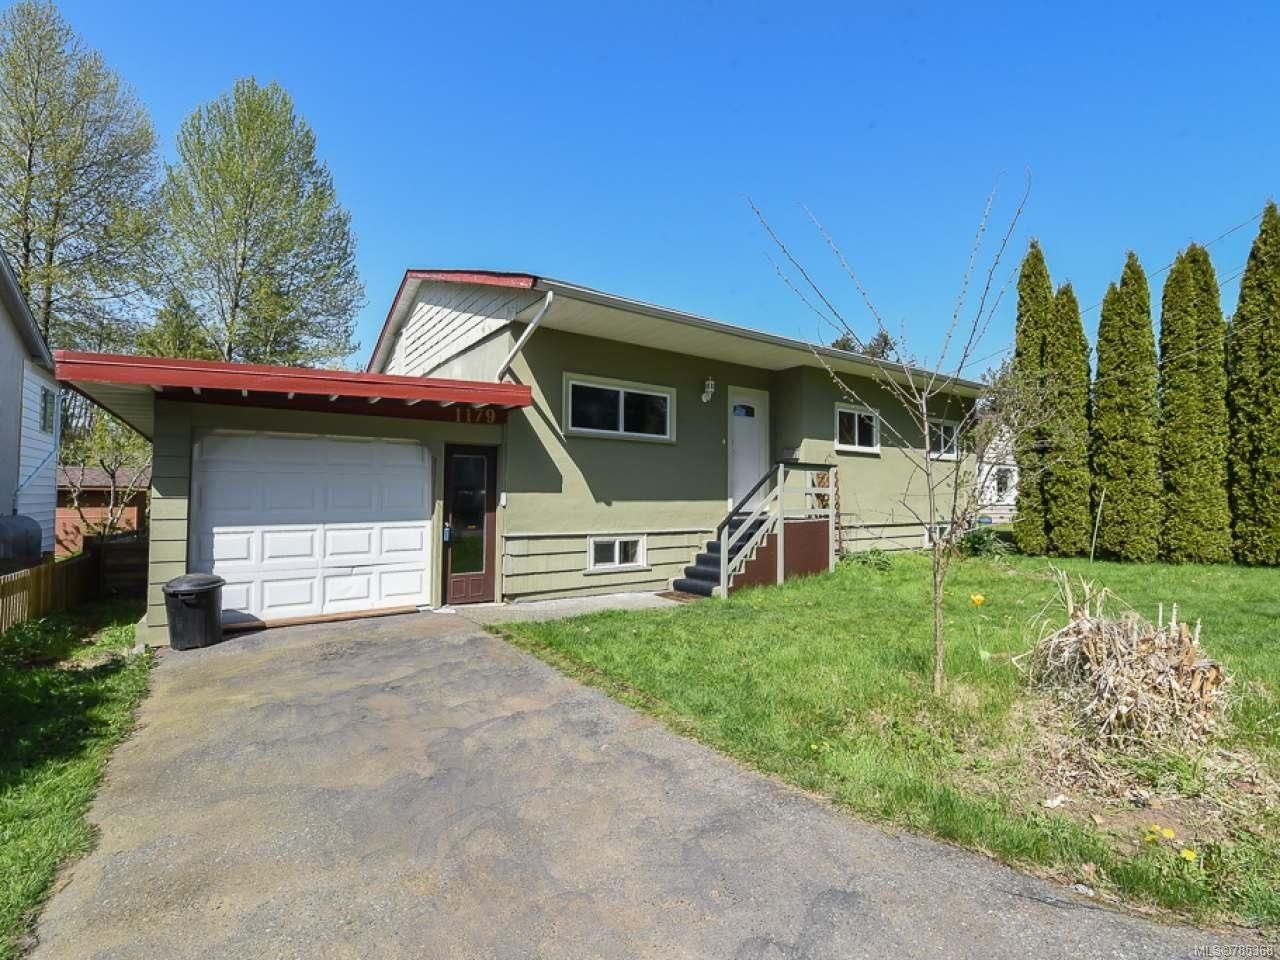 Main Photo: 1179 CUMBERLAND ROAD in COURTENAY: CV Courtenay City House for sale (Comox Valley)  : MLS®# 785368